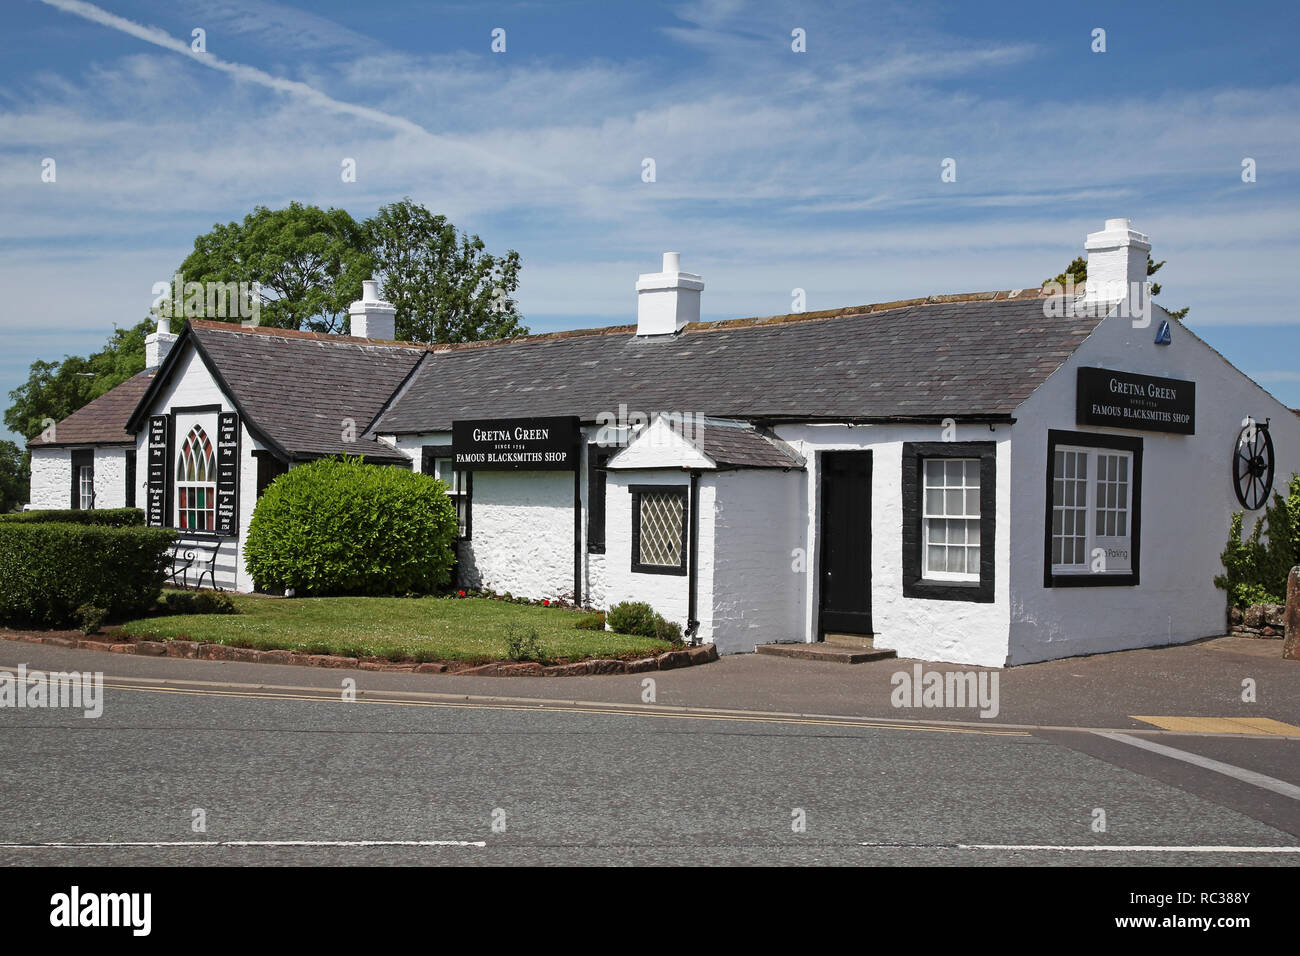 Famous Blacksmiths Shop (since 1754) at Gretna Green, Scotland, just over the border from England, where couples eloped to get married over the anvil - Stock Image